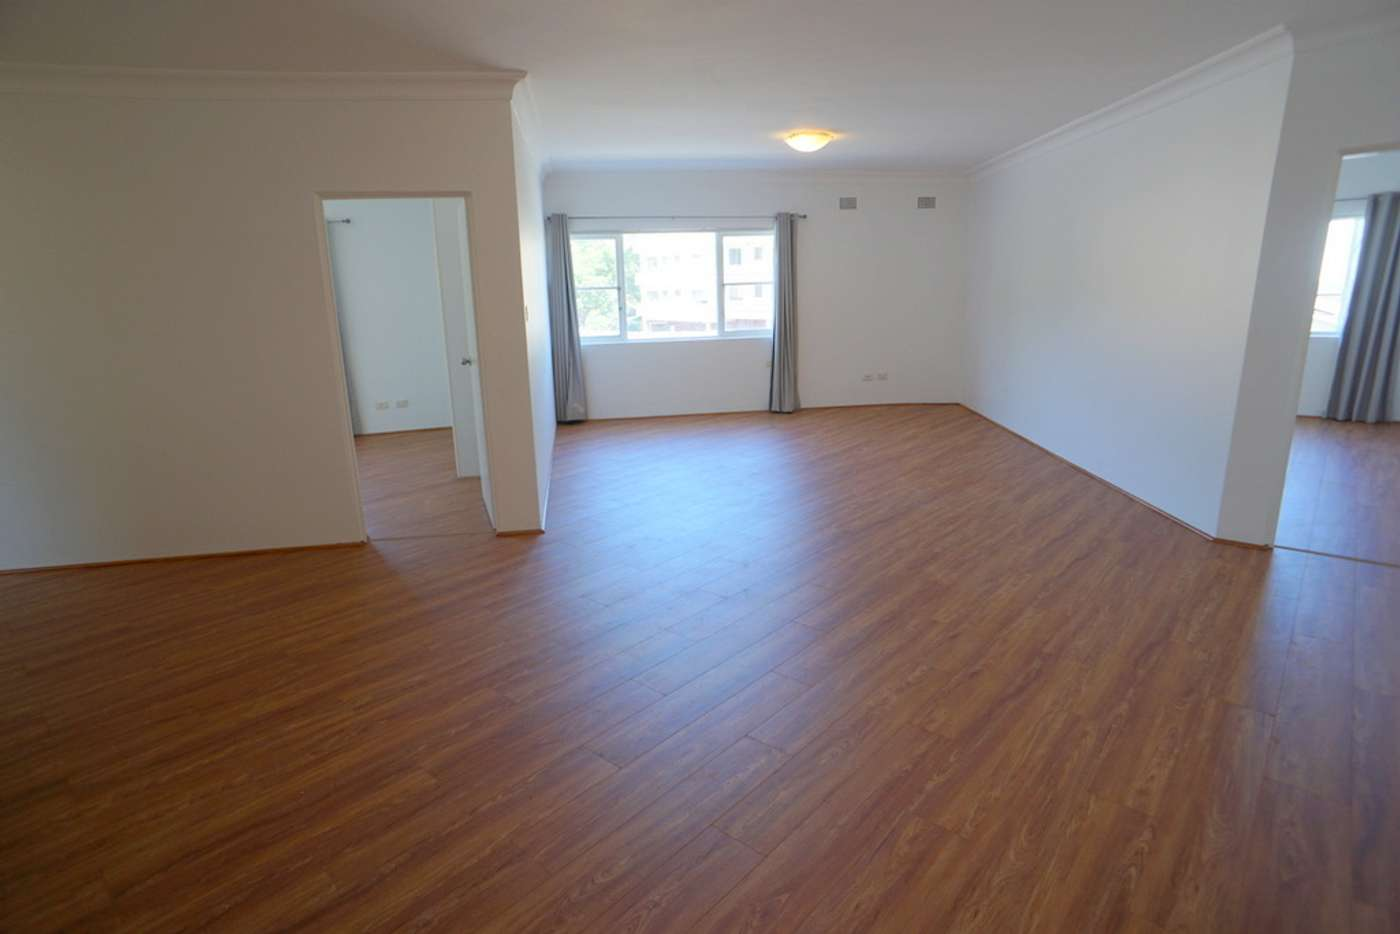 Main view of Homely apartment listing, 119/102-120 Railway Street, Rockdale NSW 2216